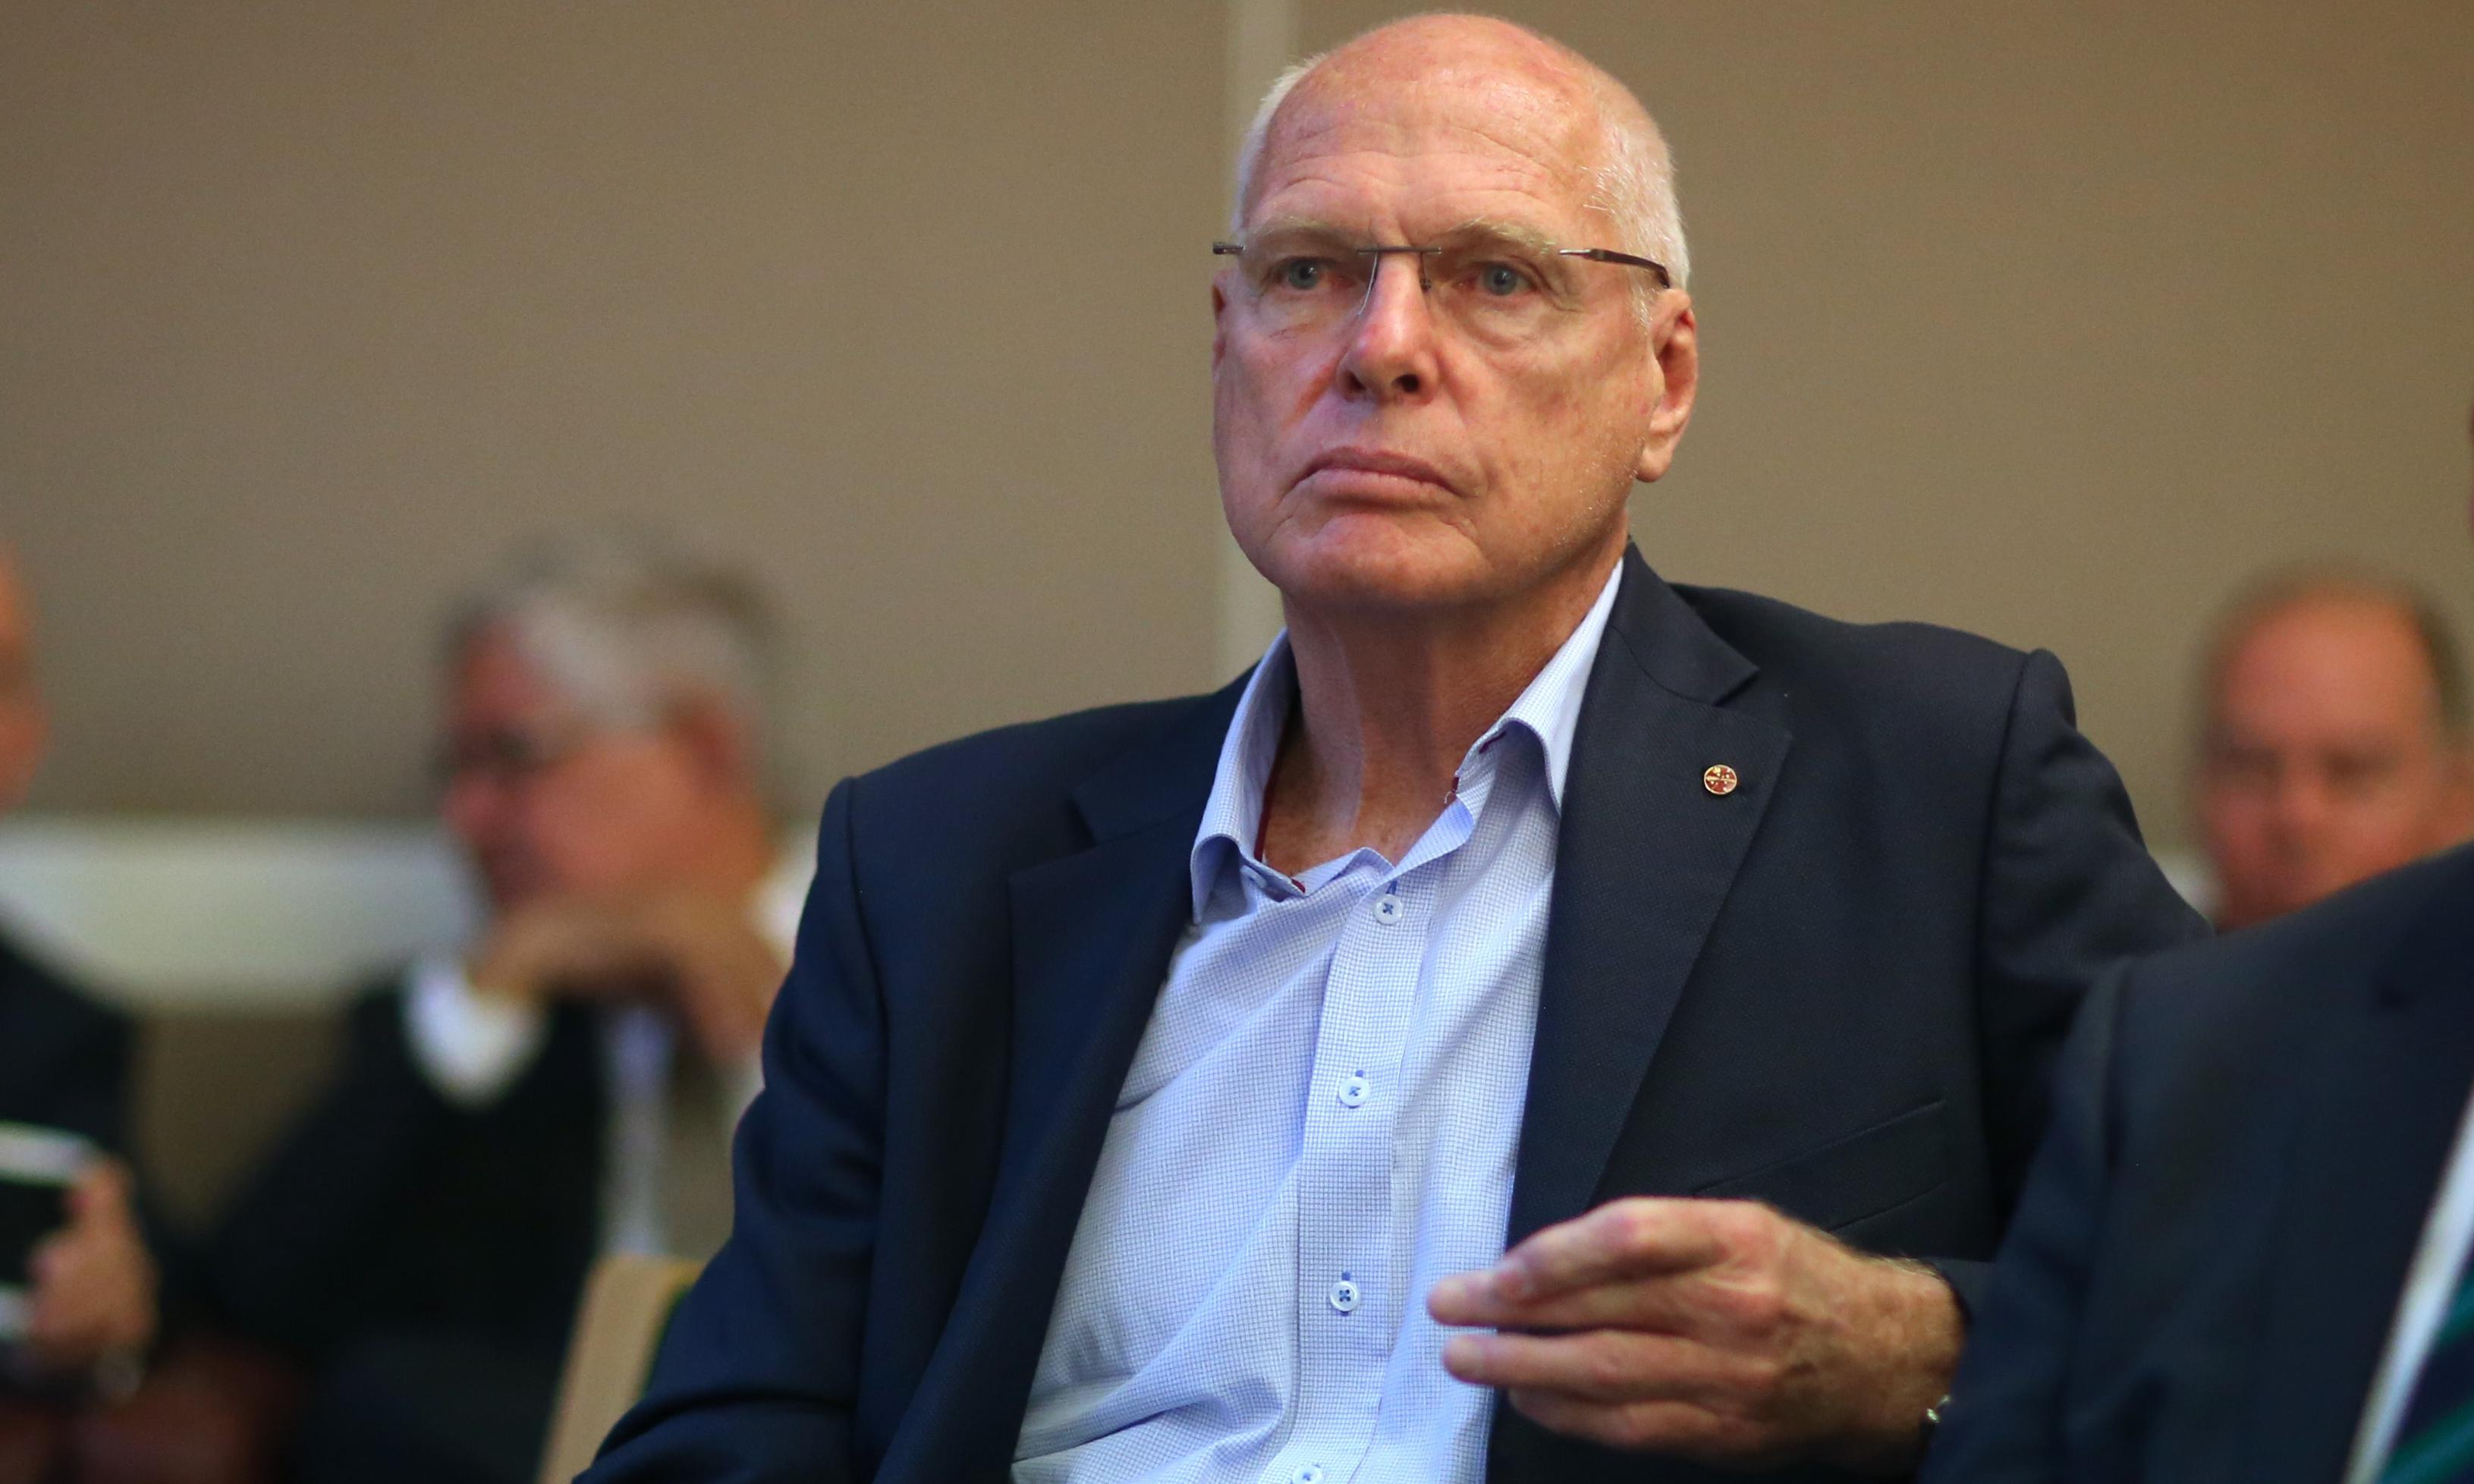 Jim Molan likely to face challenge by moderates for NSW Senate seat